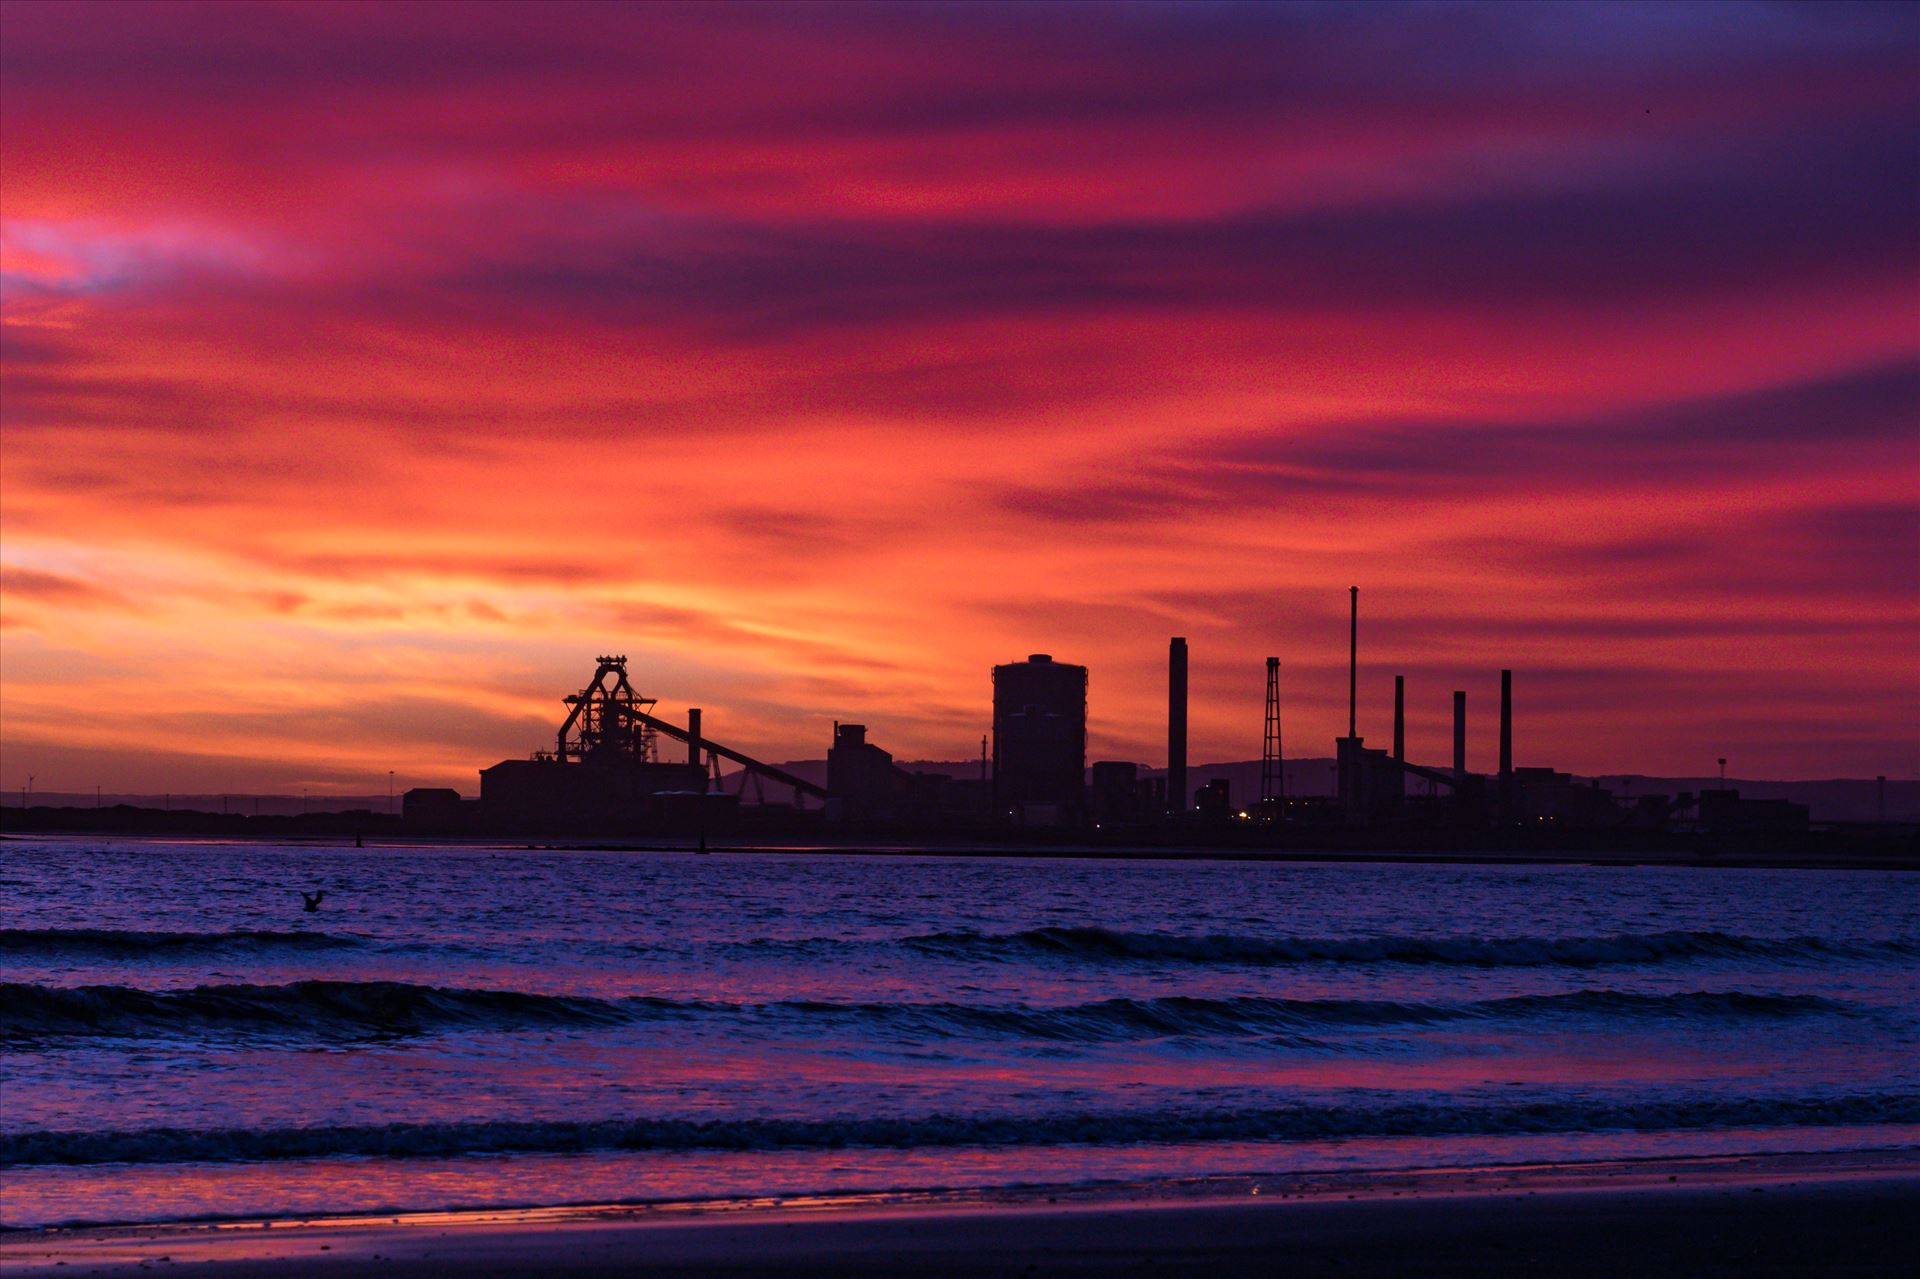 SSI Redcar Steel Works Sunrise, Red sky in the Morning - Taken on the 2/01/18 on a very cold Seaton Beach looking over the river to SSI Redcar Steel Works by AJ Stoves Photography